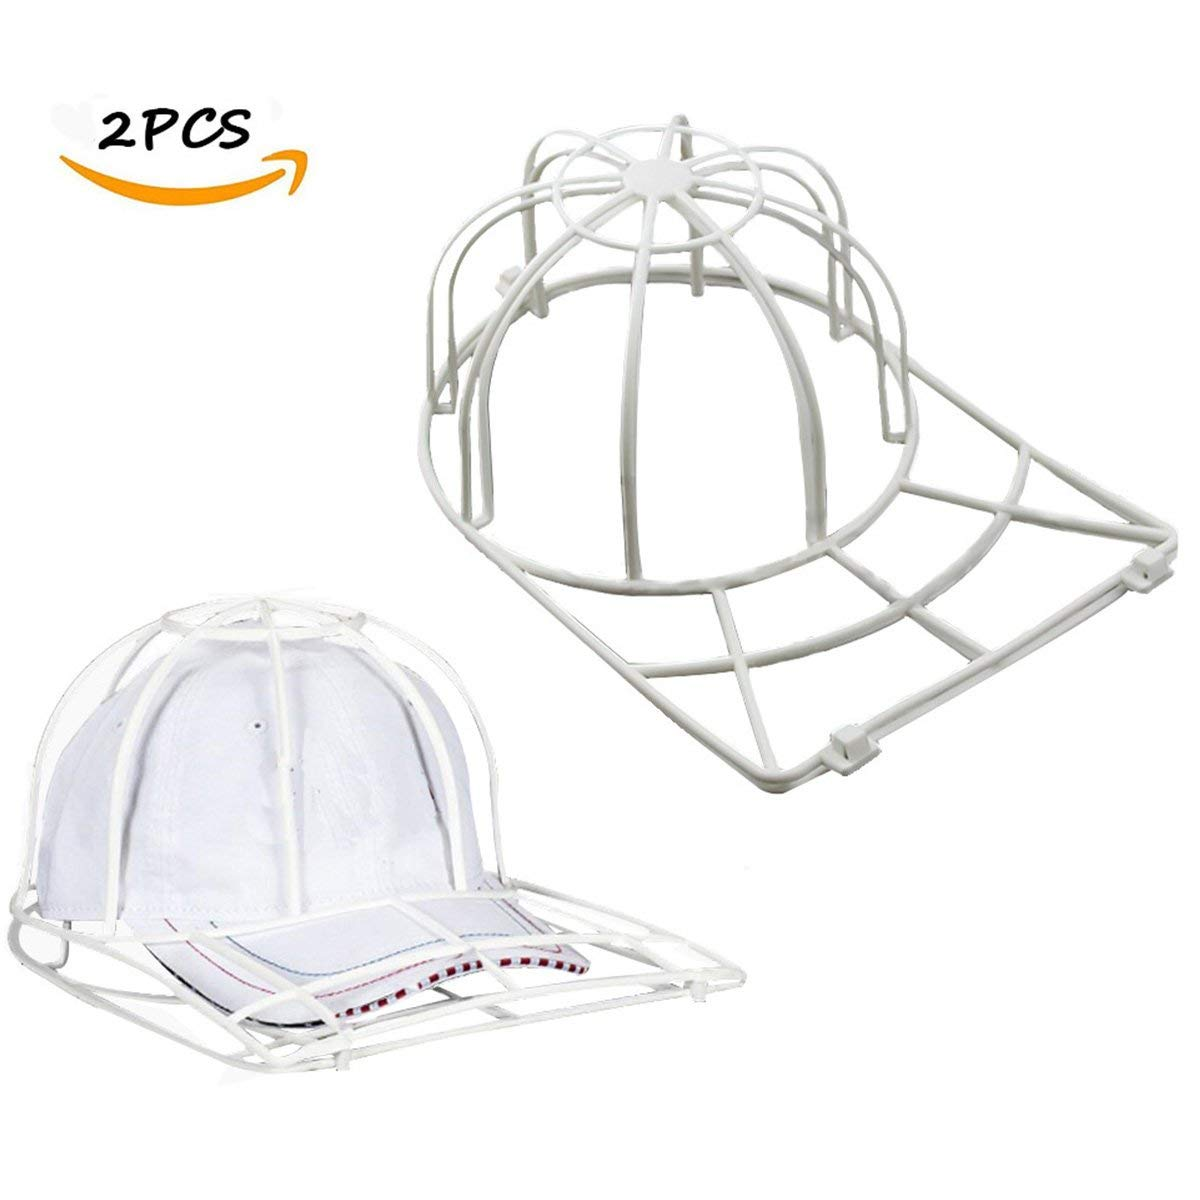 Buy Baseball Hat Washer3pcs Cap Washer Framewashing Cagewhite Cap